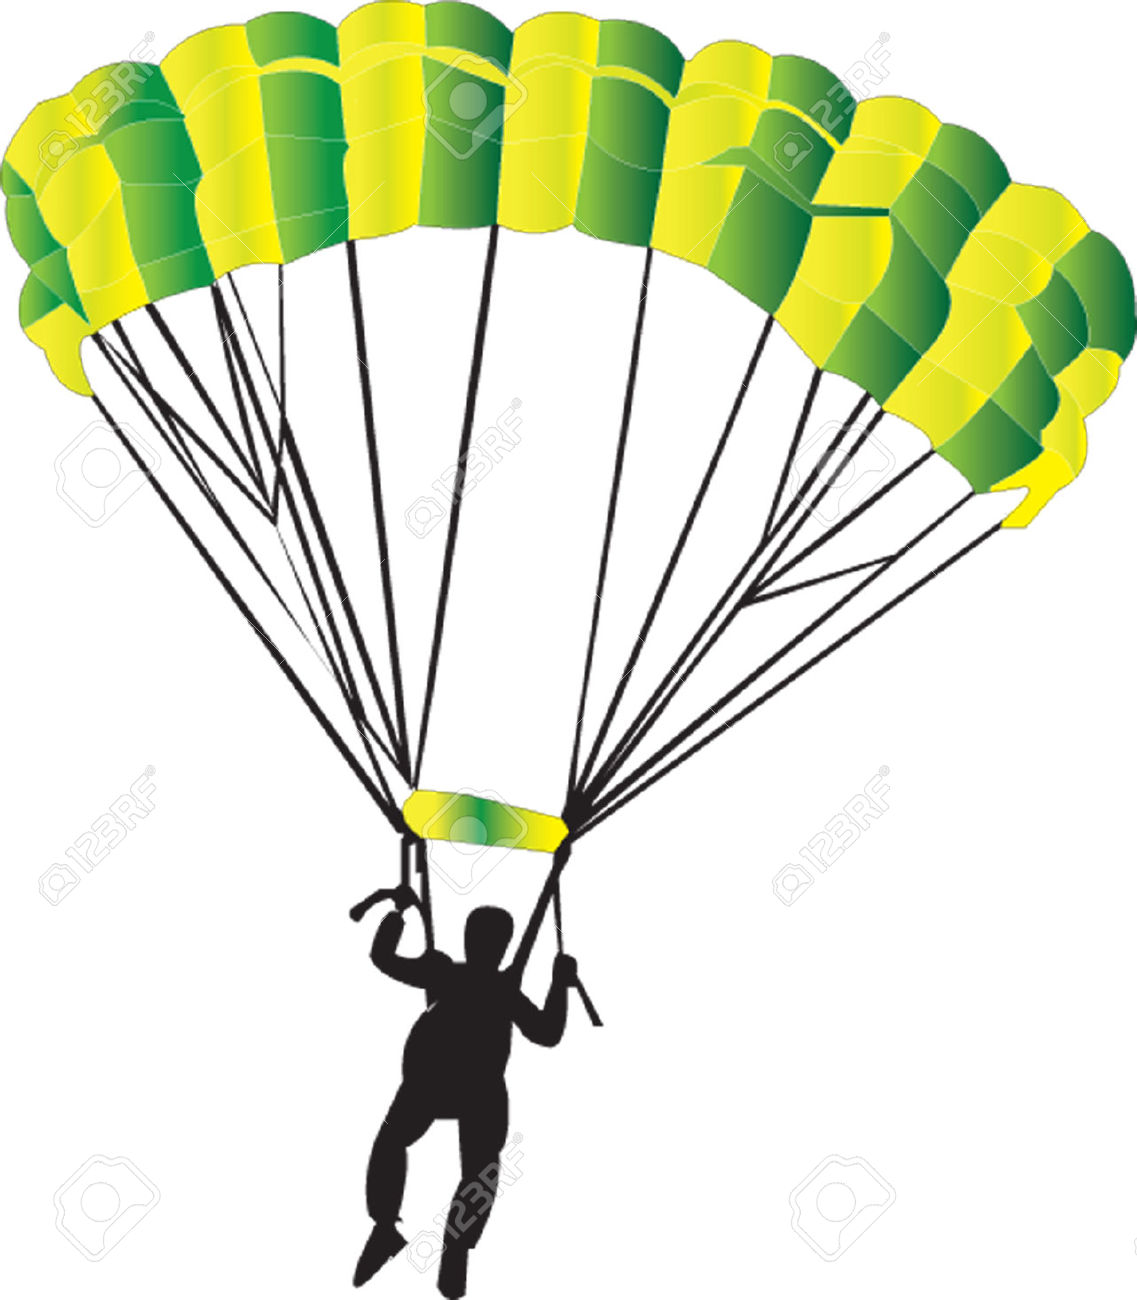 Parachute clipart #15, Download drawings